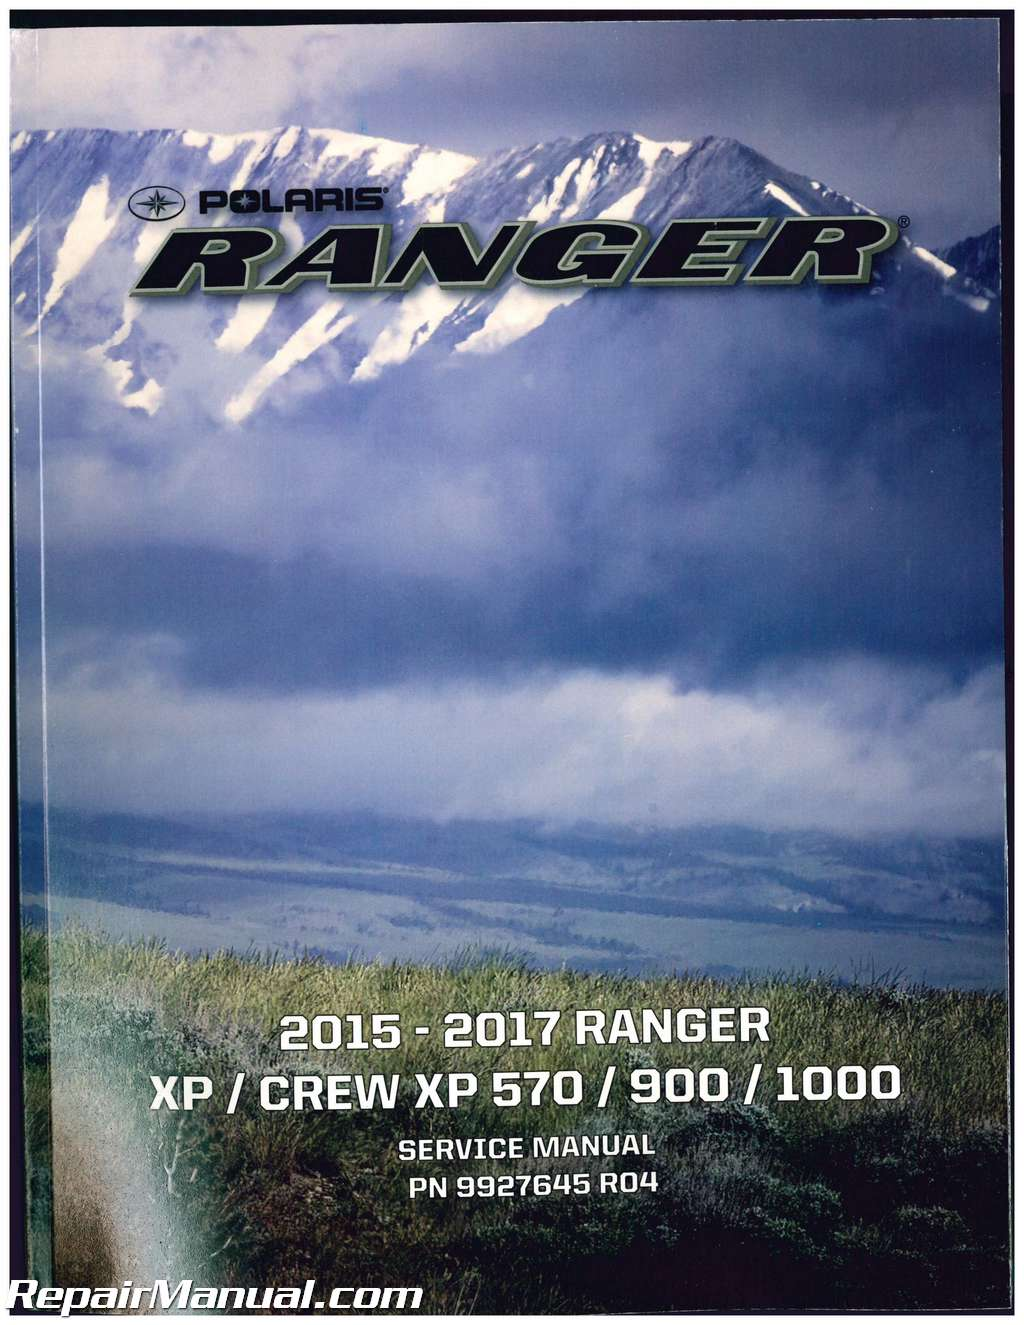 2015 Polaris Ranger Xp 900 Owners Manual